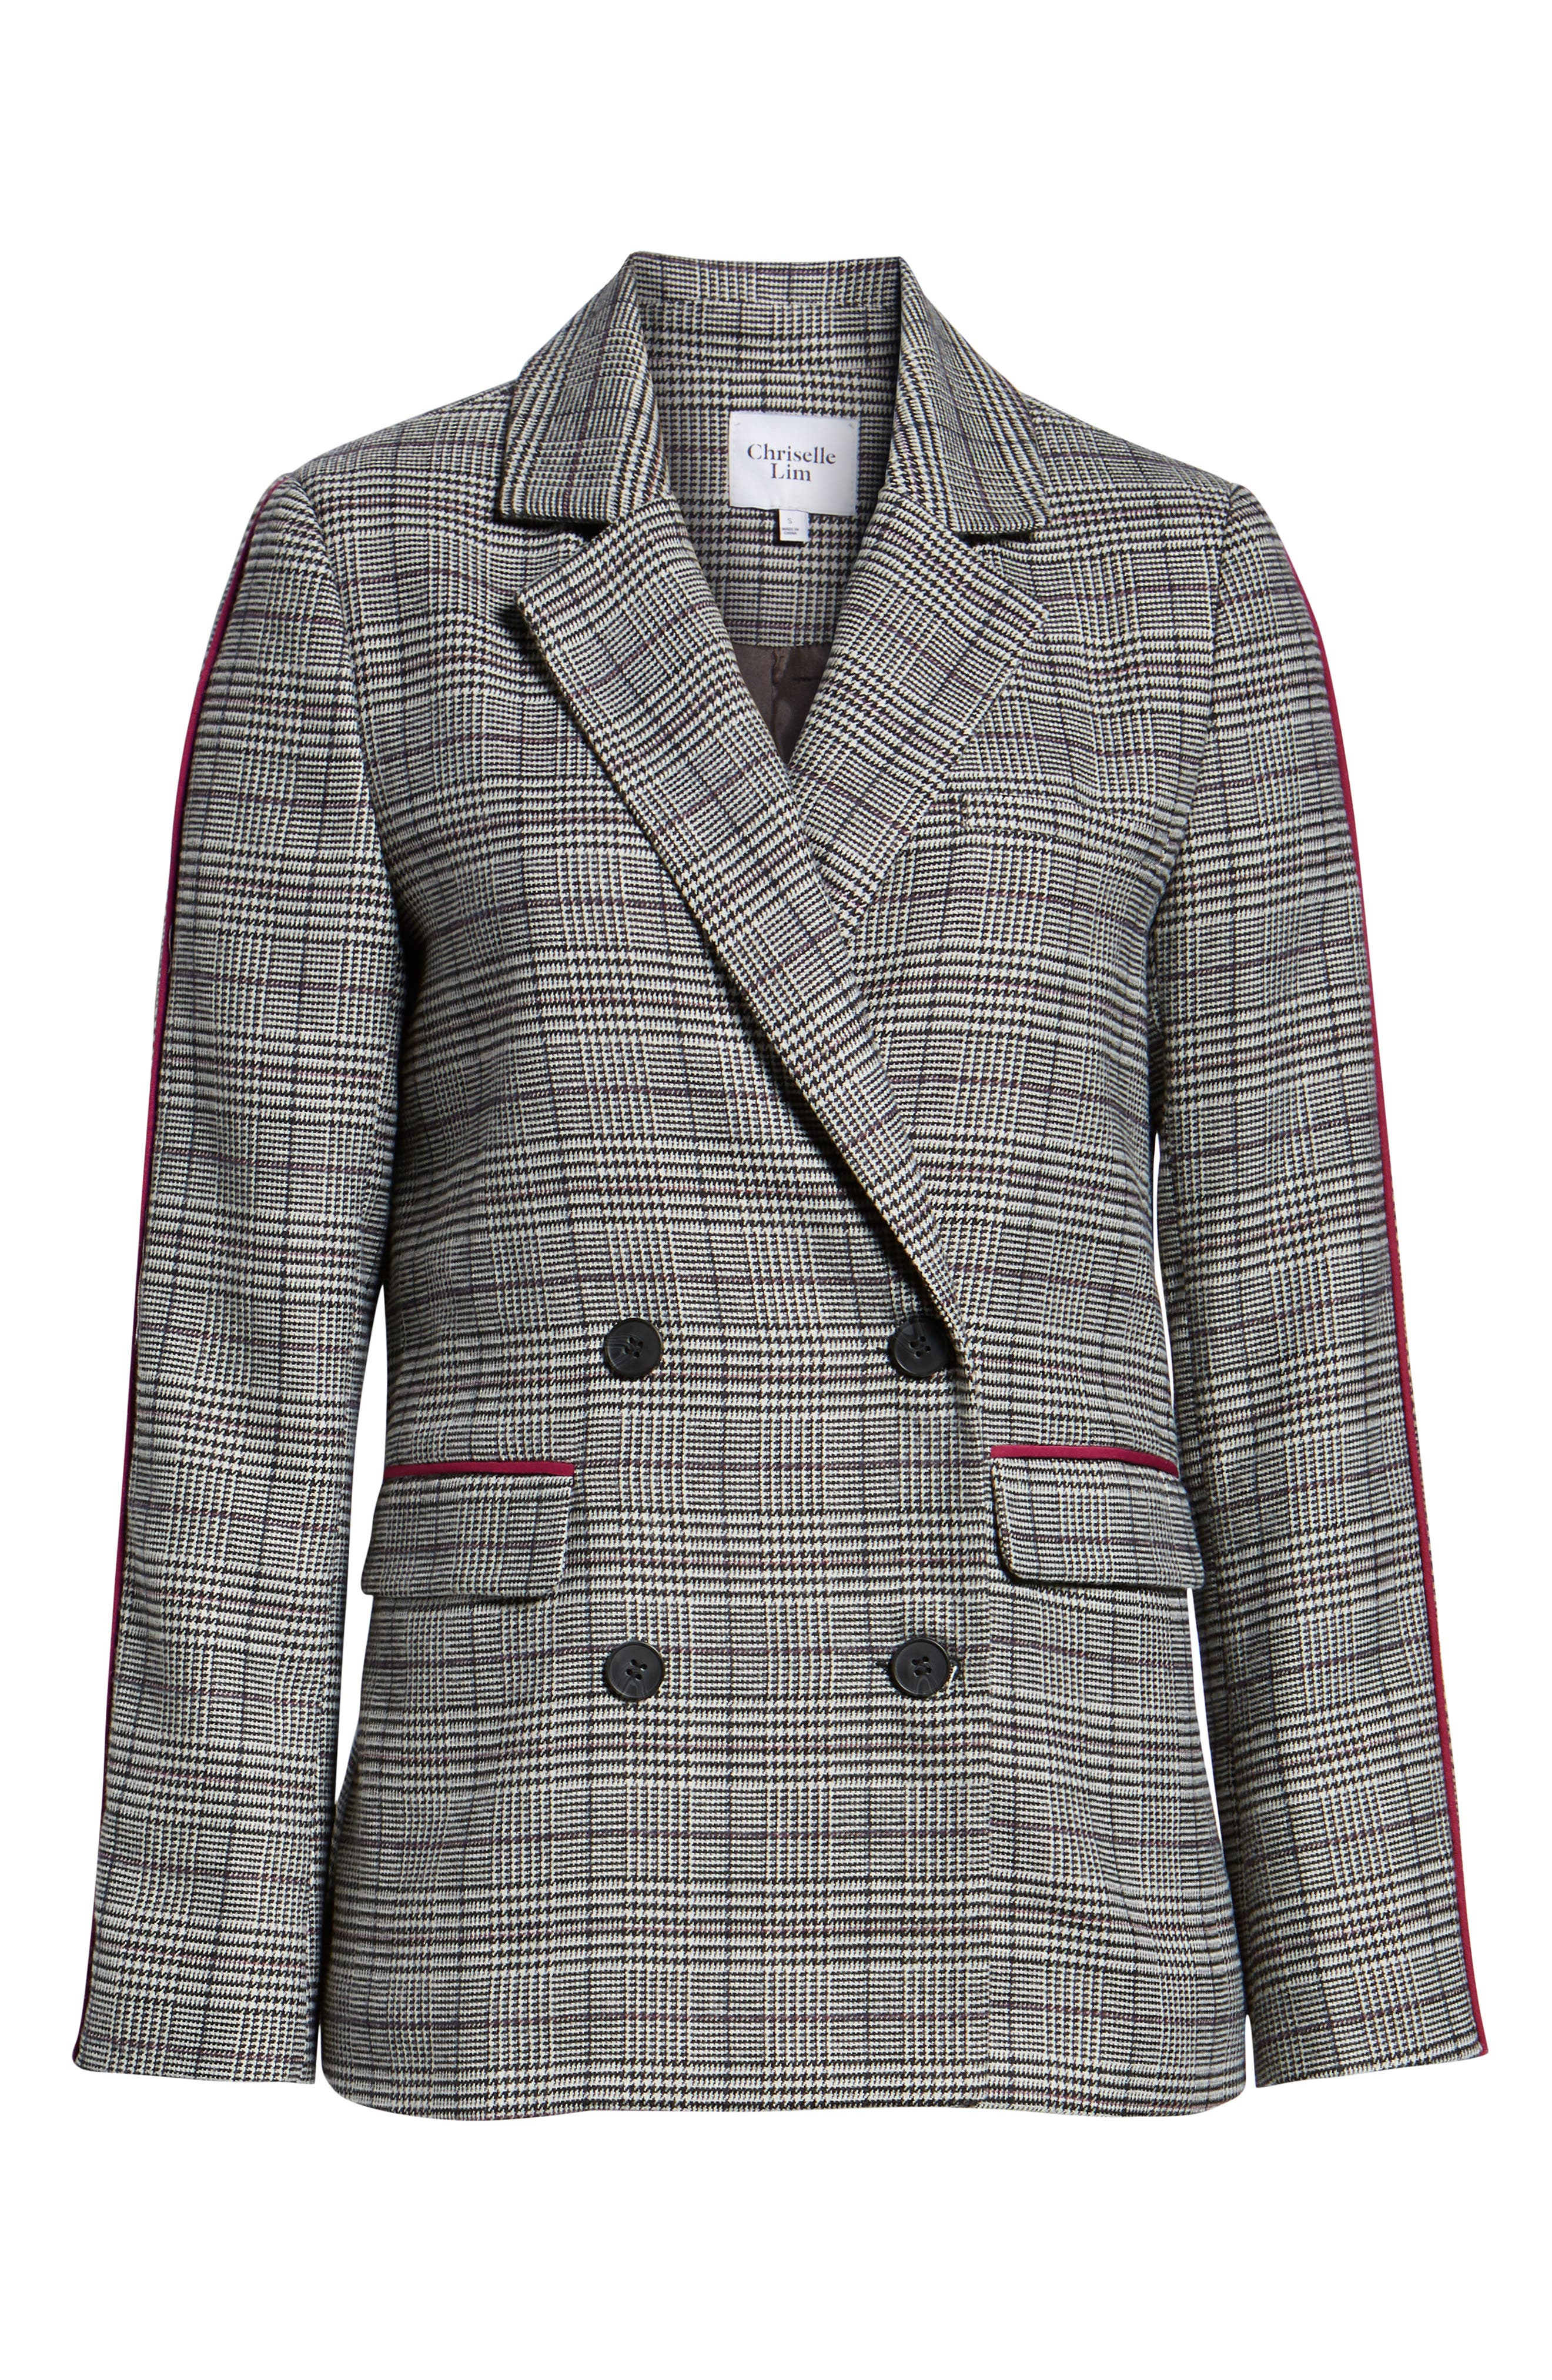 Chriselle Lim Bianca Piped Houndstooth Blazer,                             Alternate thumbnail 7, color,                             GREY PLAID